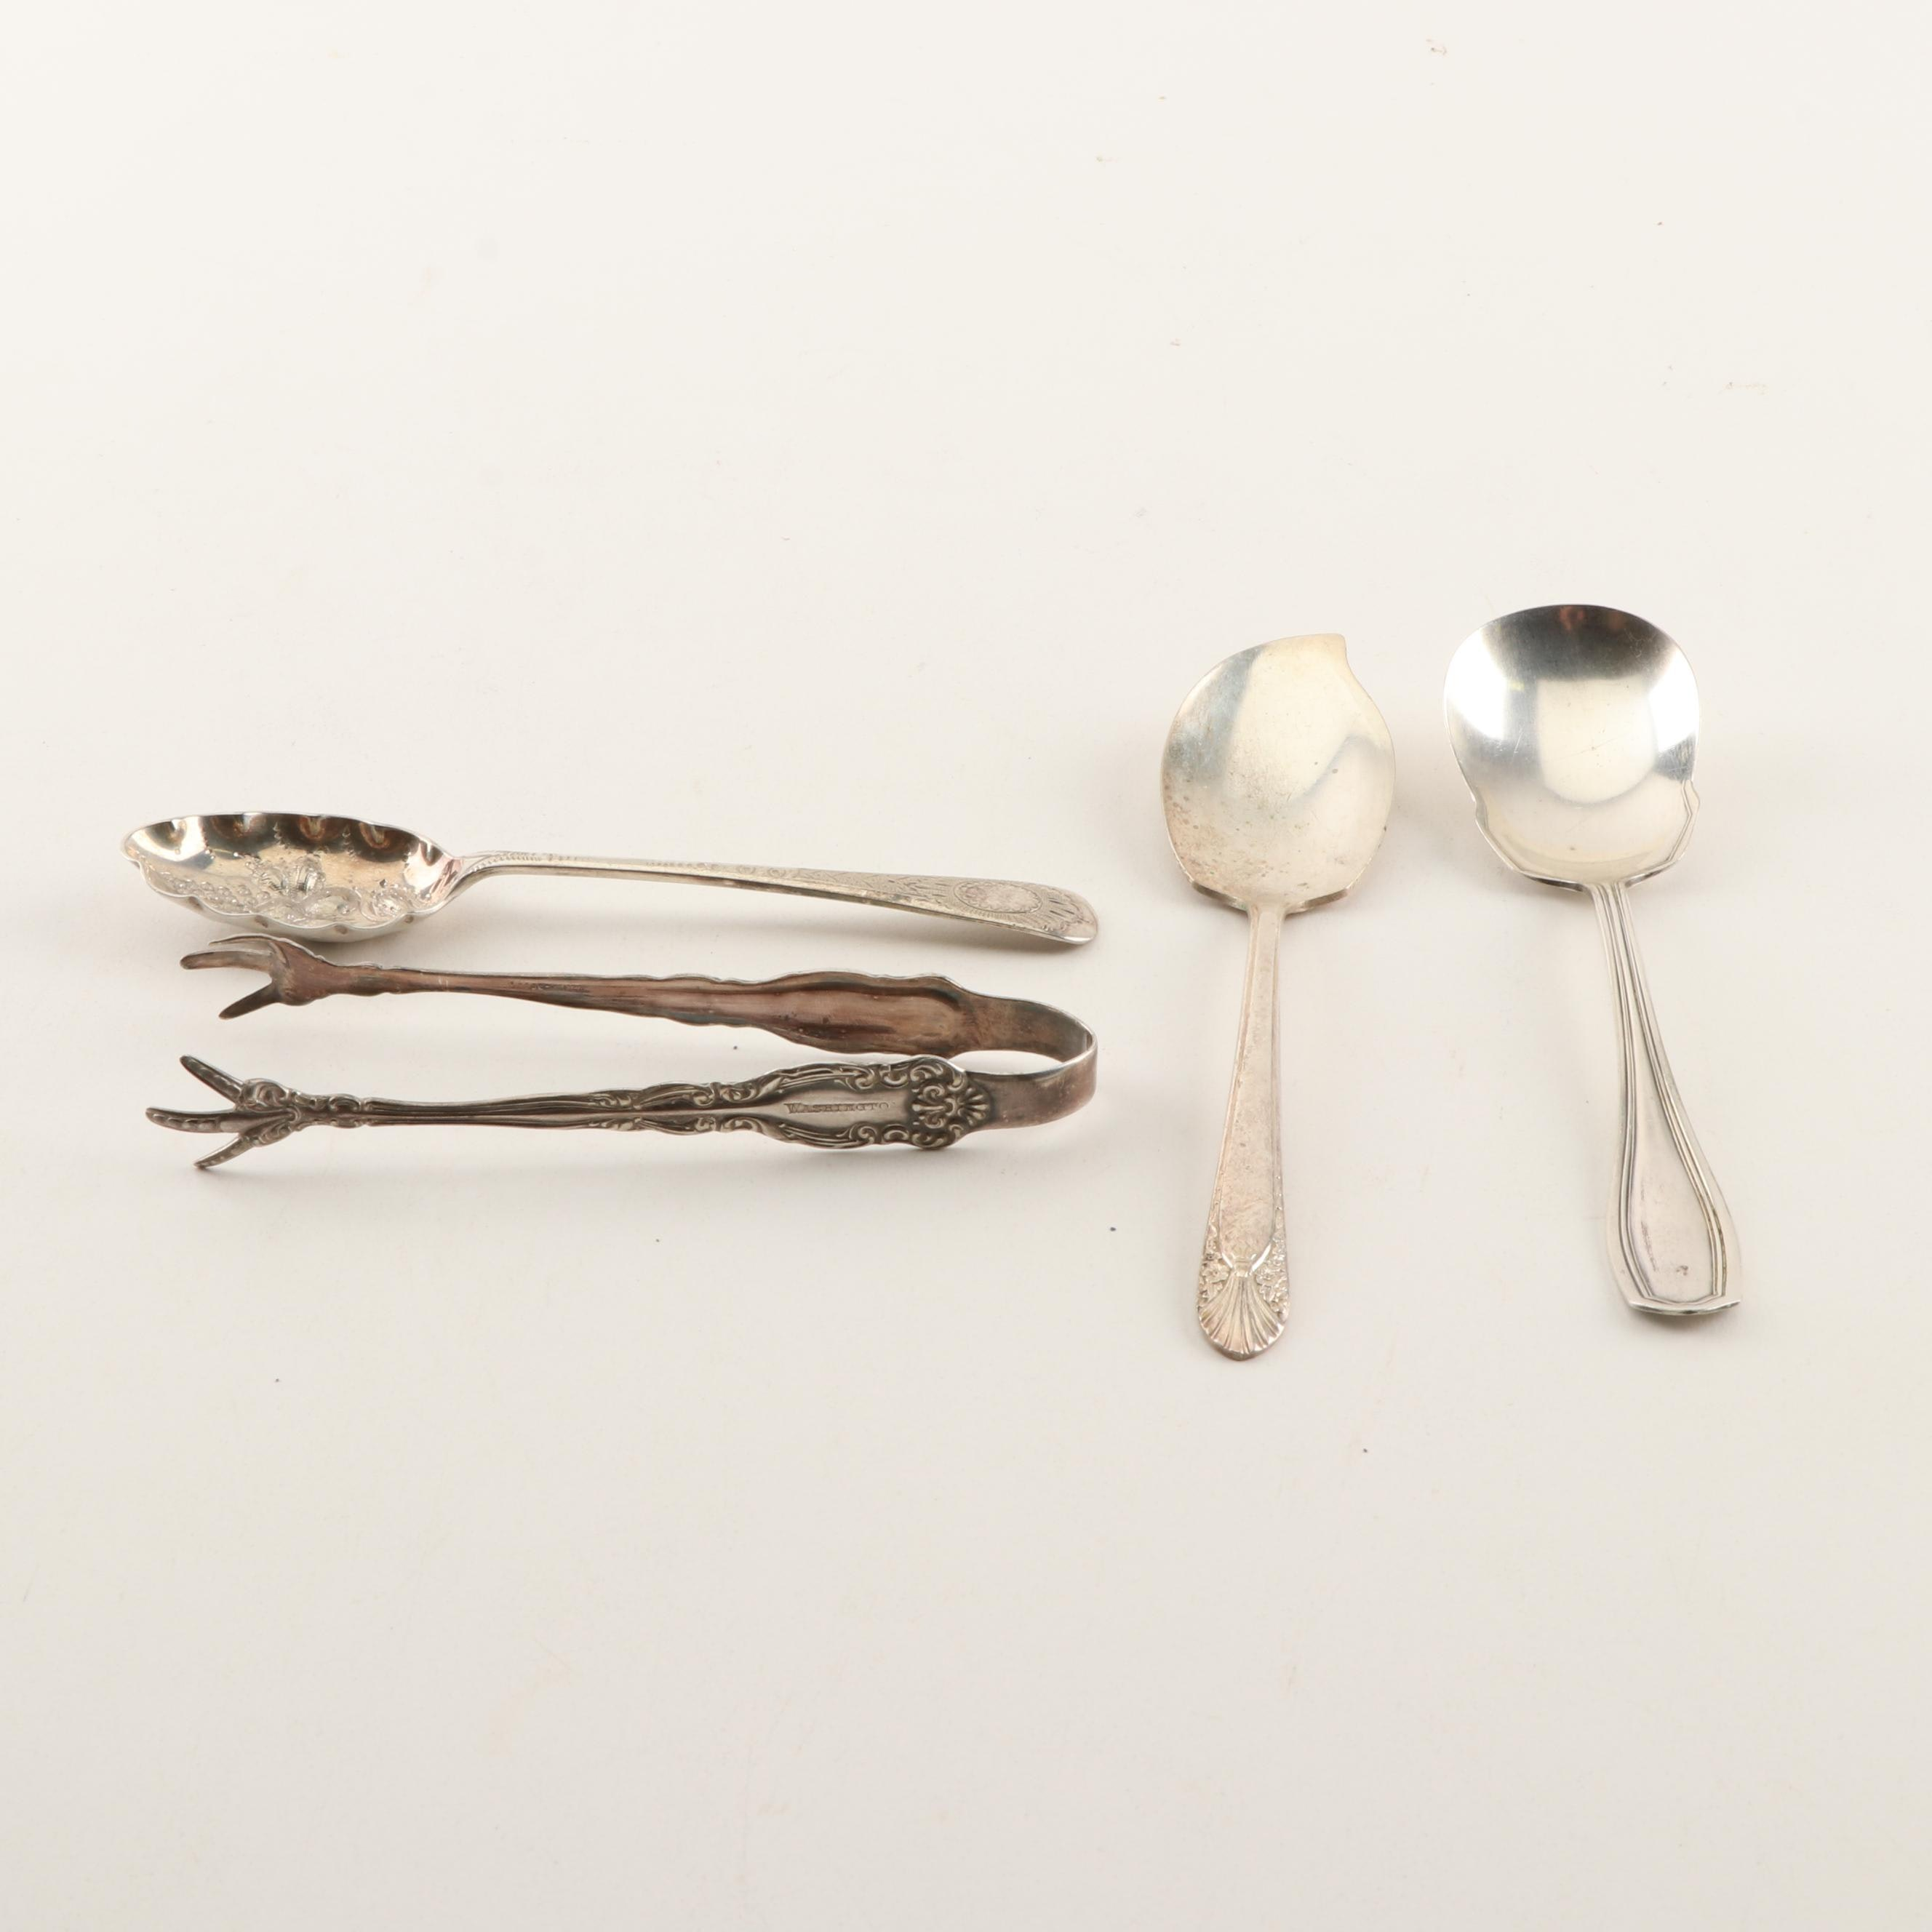 Silver Plated Sugar Tongs, Berry Spoon, Sugar Spoon, and Jelly Spoon